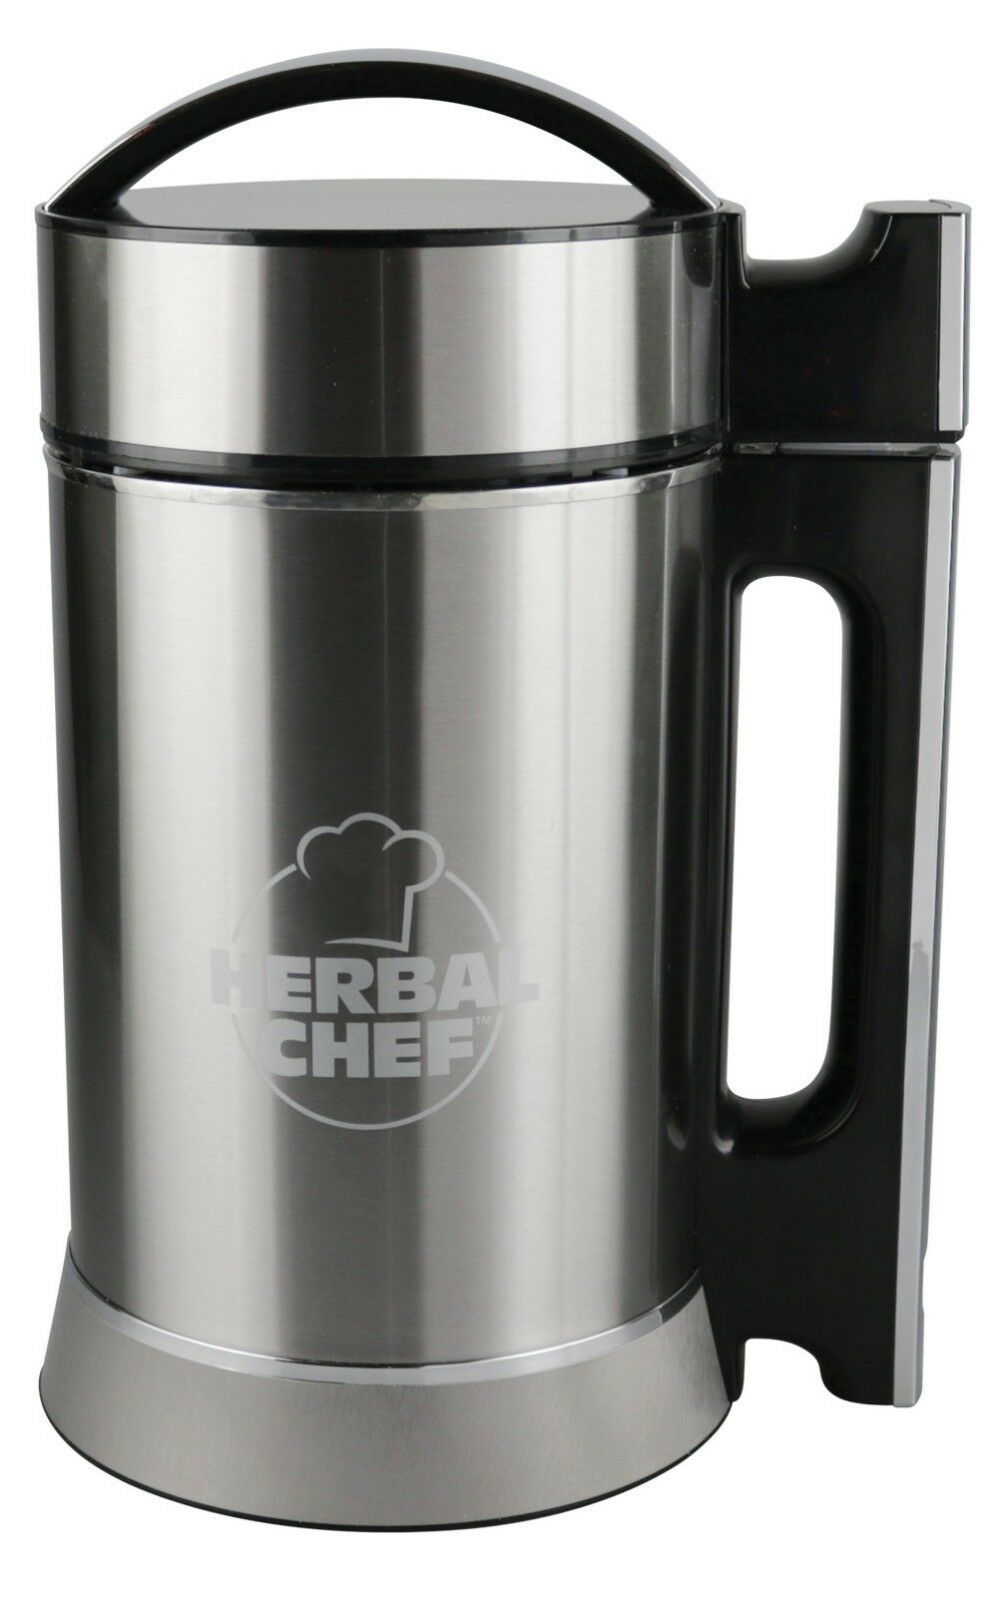 Herbal chef Electric beurre Infuseur